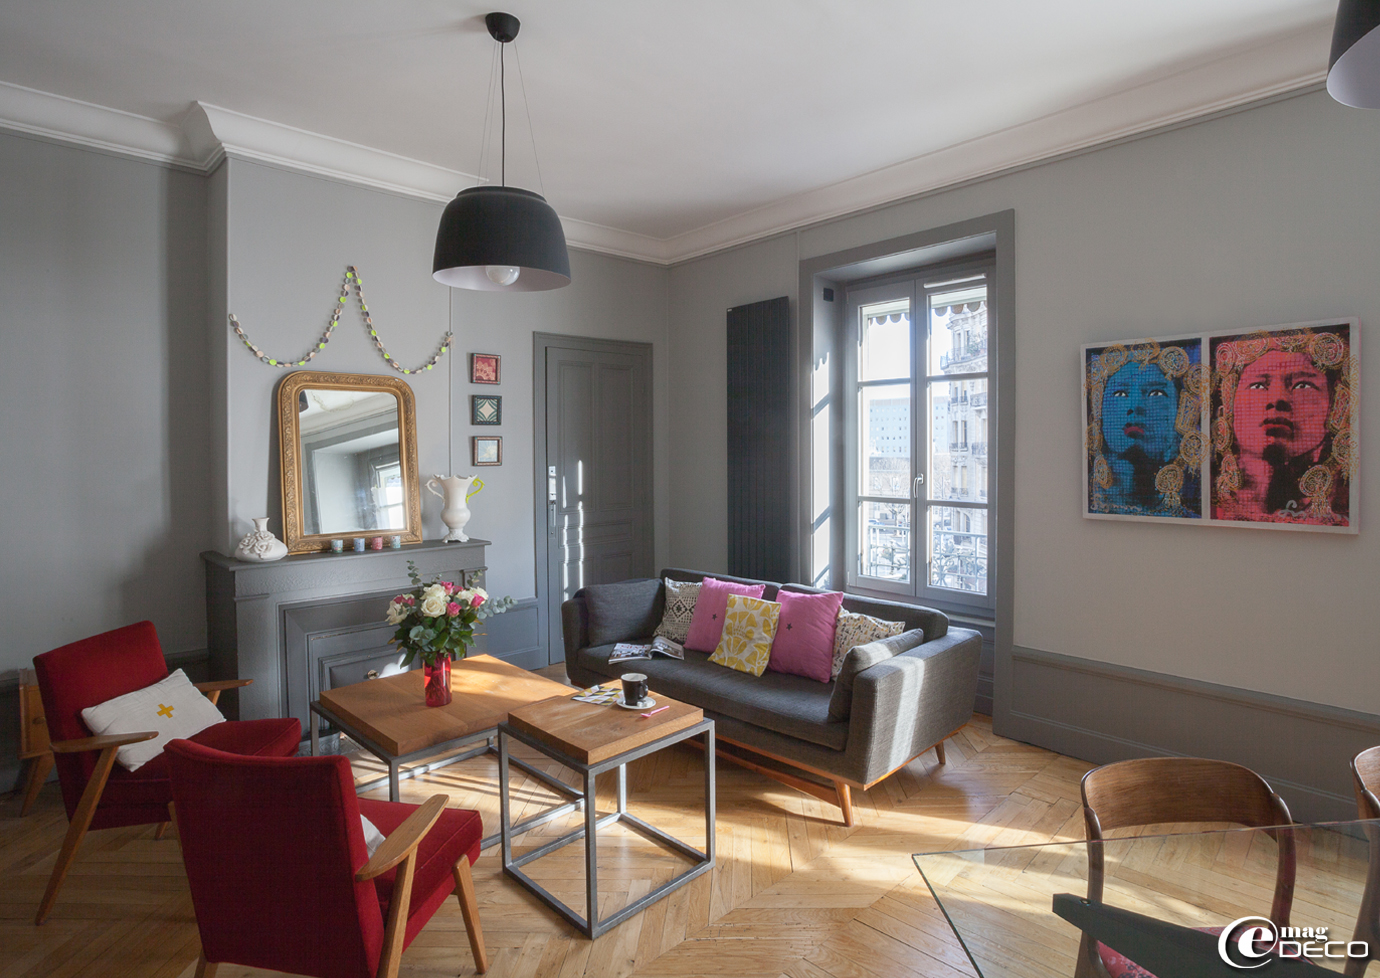 Un appartement trendy lyon e magdeco magazine de for Modele deco interieur